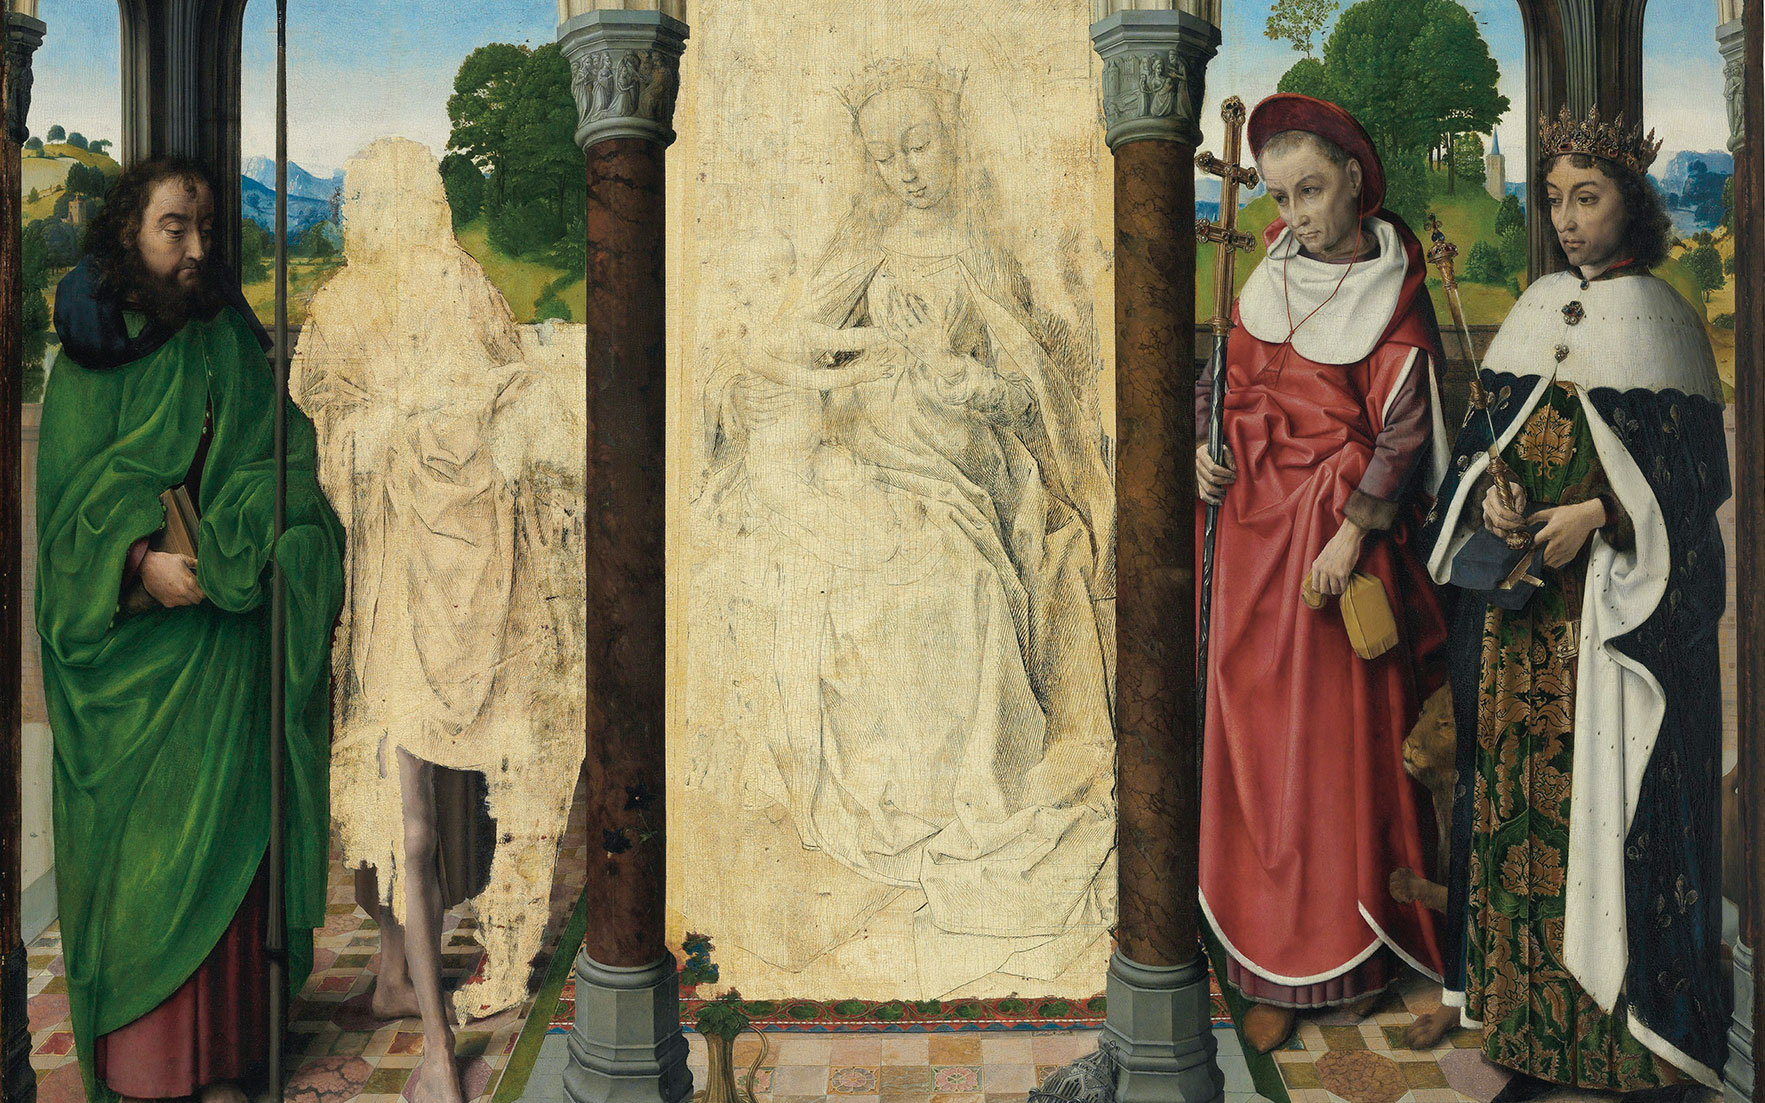 Rare Renaissance altarpiece to